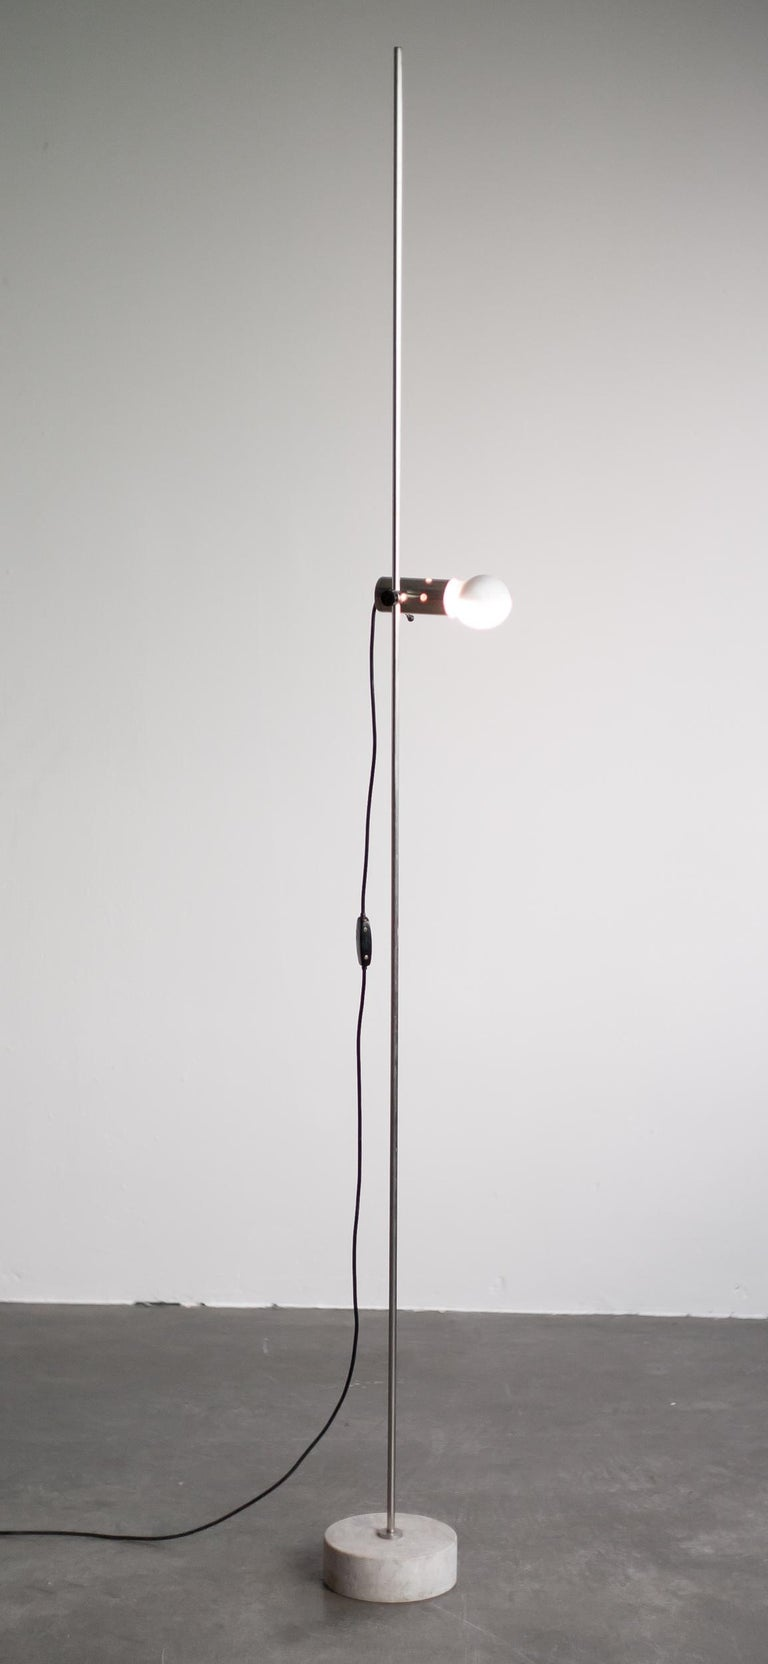 Steel Tito Agnoli Original 1950s Edition 387 Floor Lamp for O-Luce For Sale